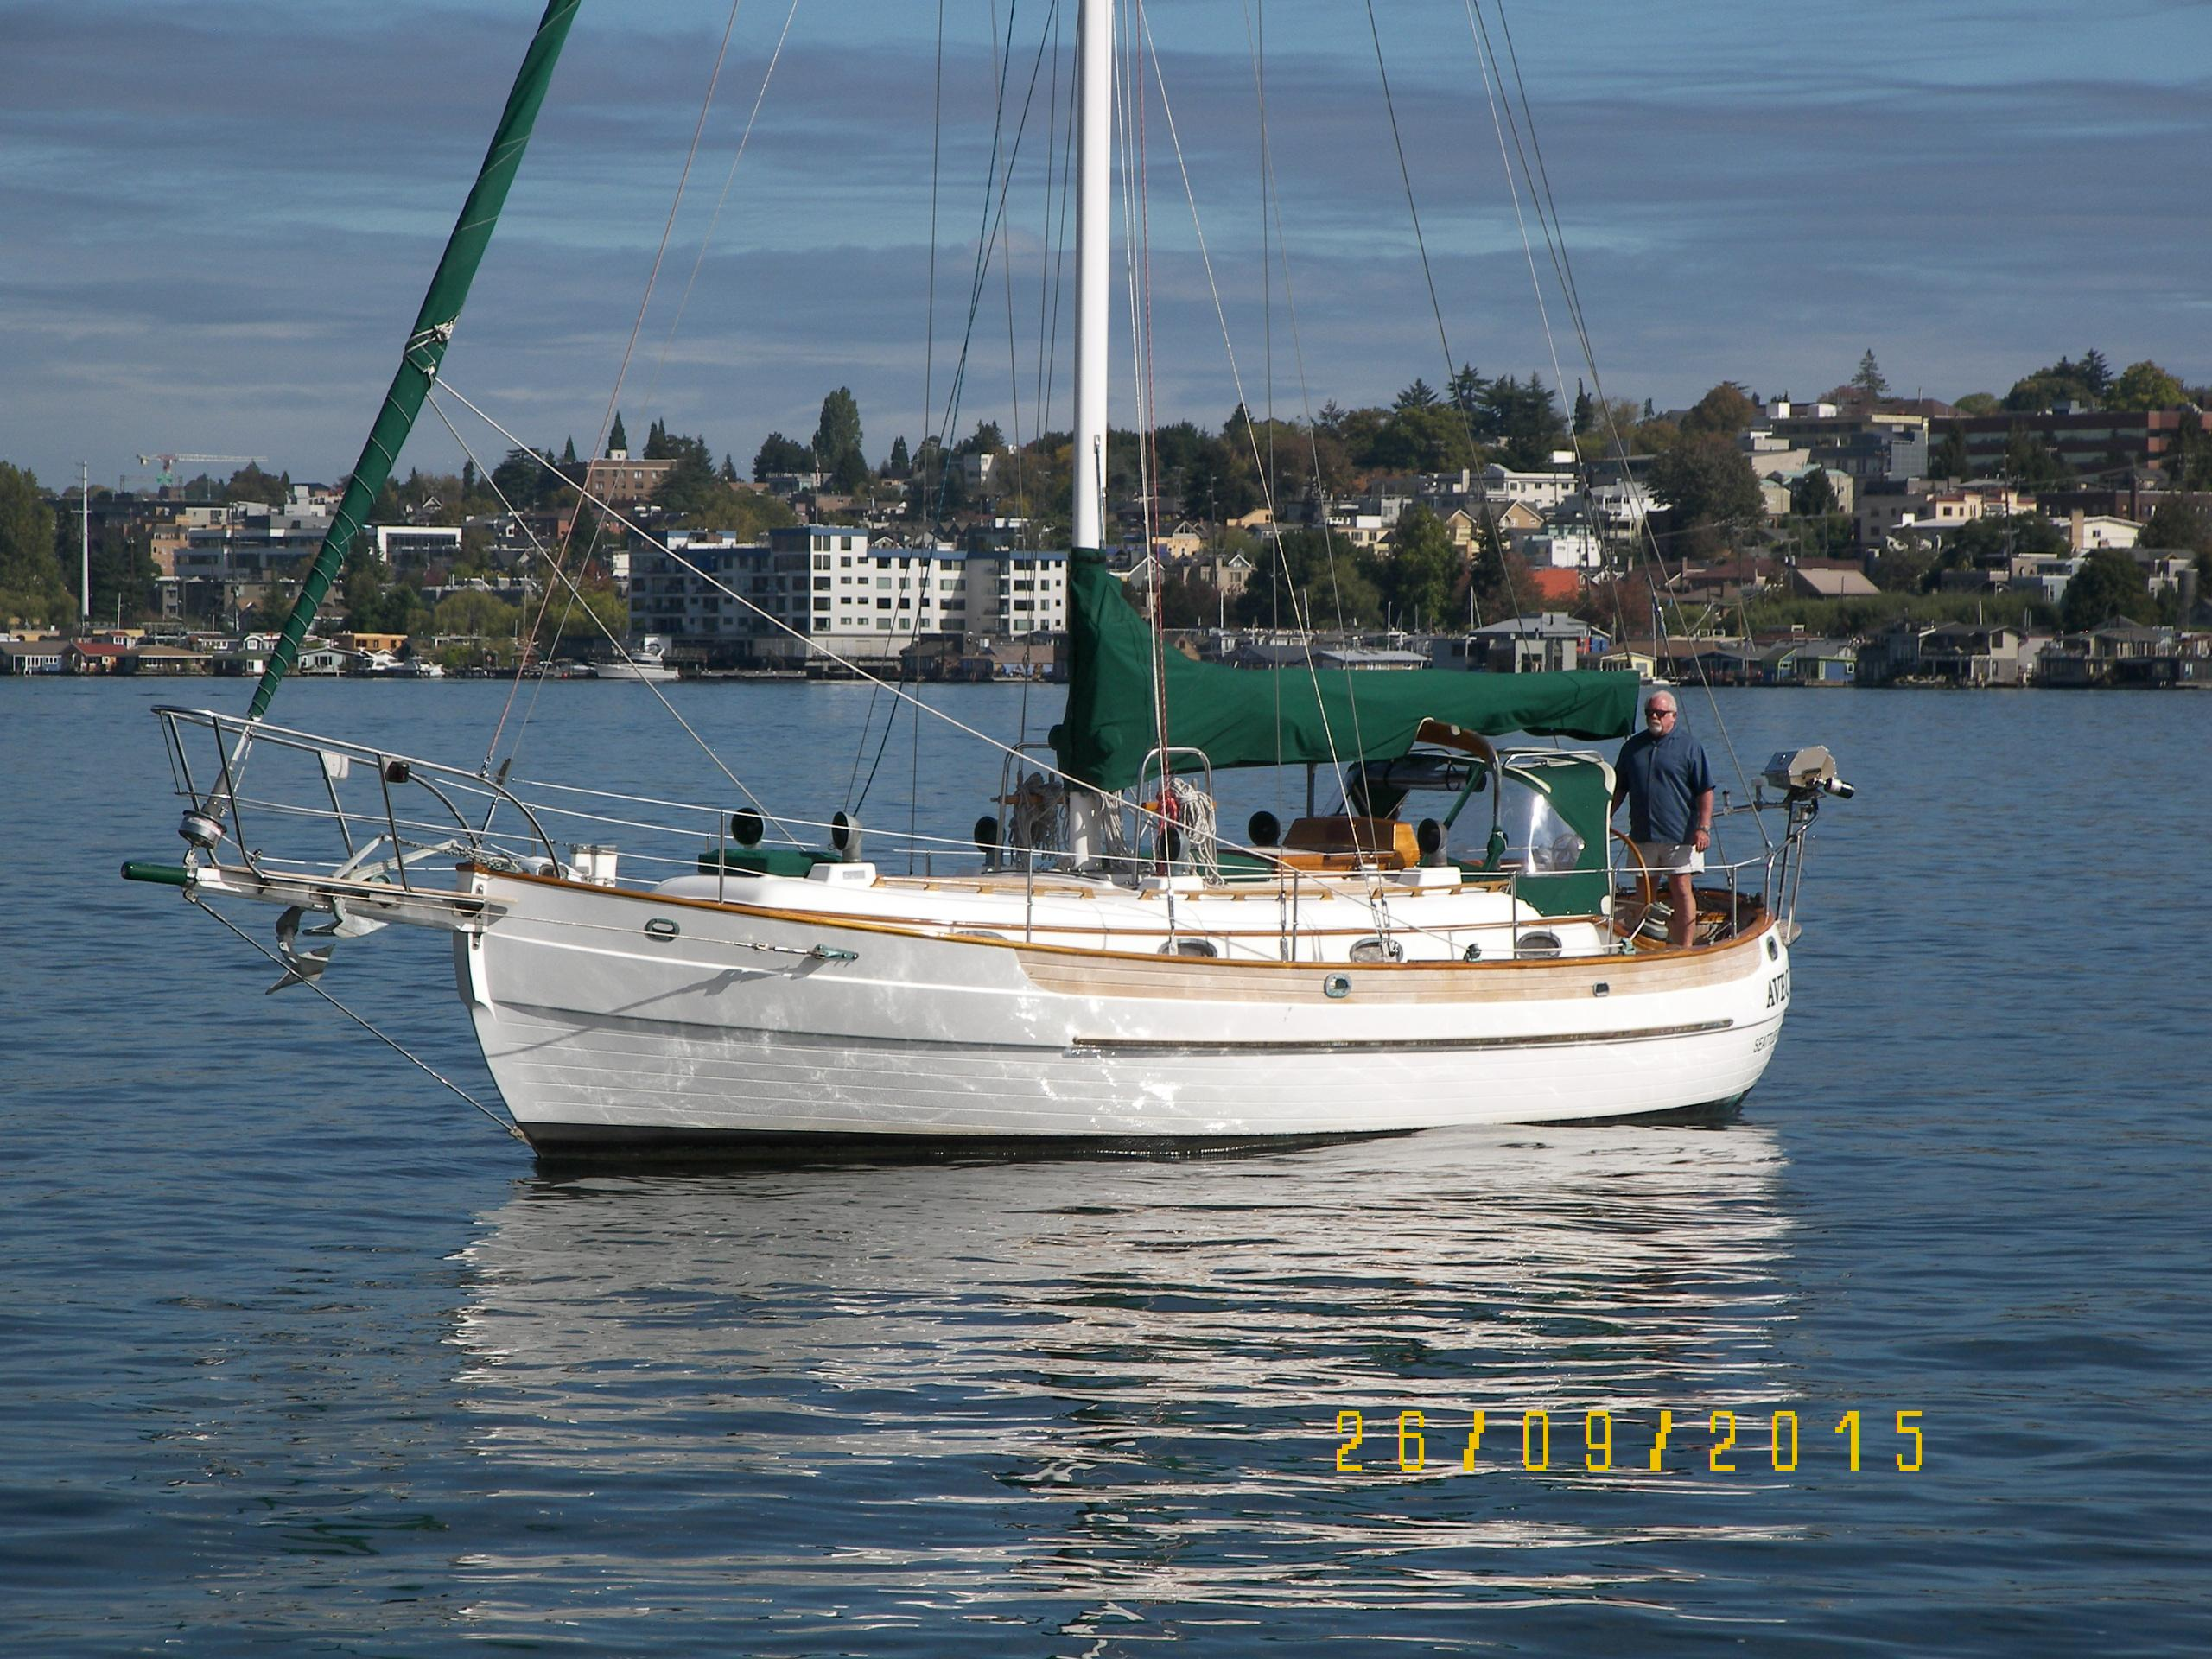 5949511_20160925155046016_1_XLARGE&w=2560&h=1920&t=1478587777000 1985 hans christian 33t sail boat for sale www yachtworld com Simple Boat Wiring Diagram at n-0.co